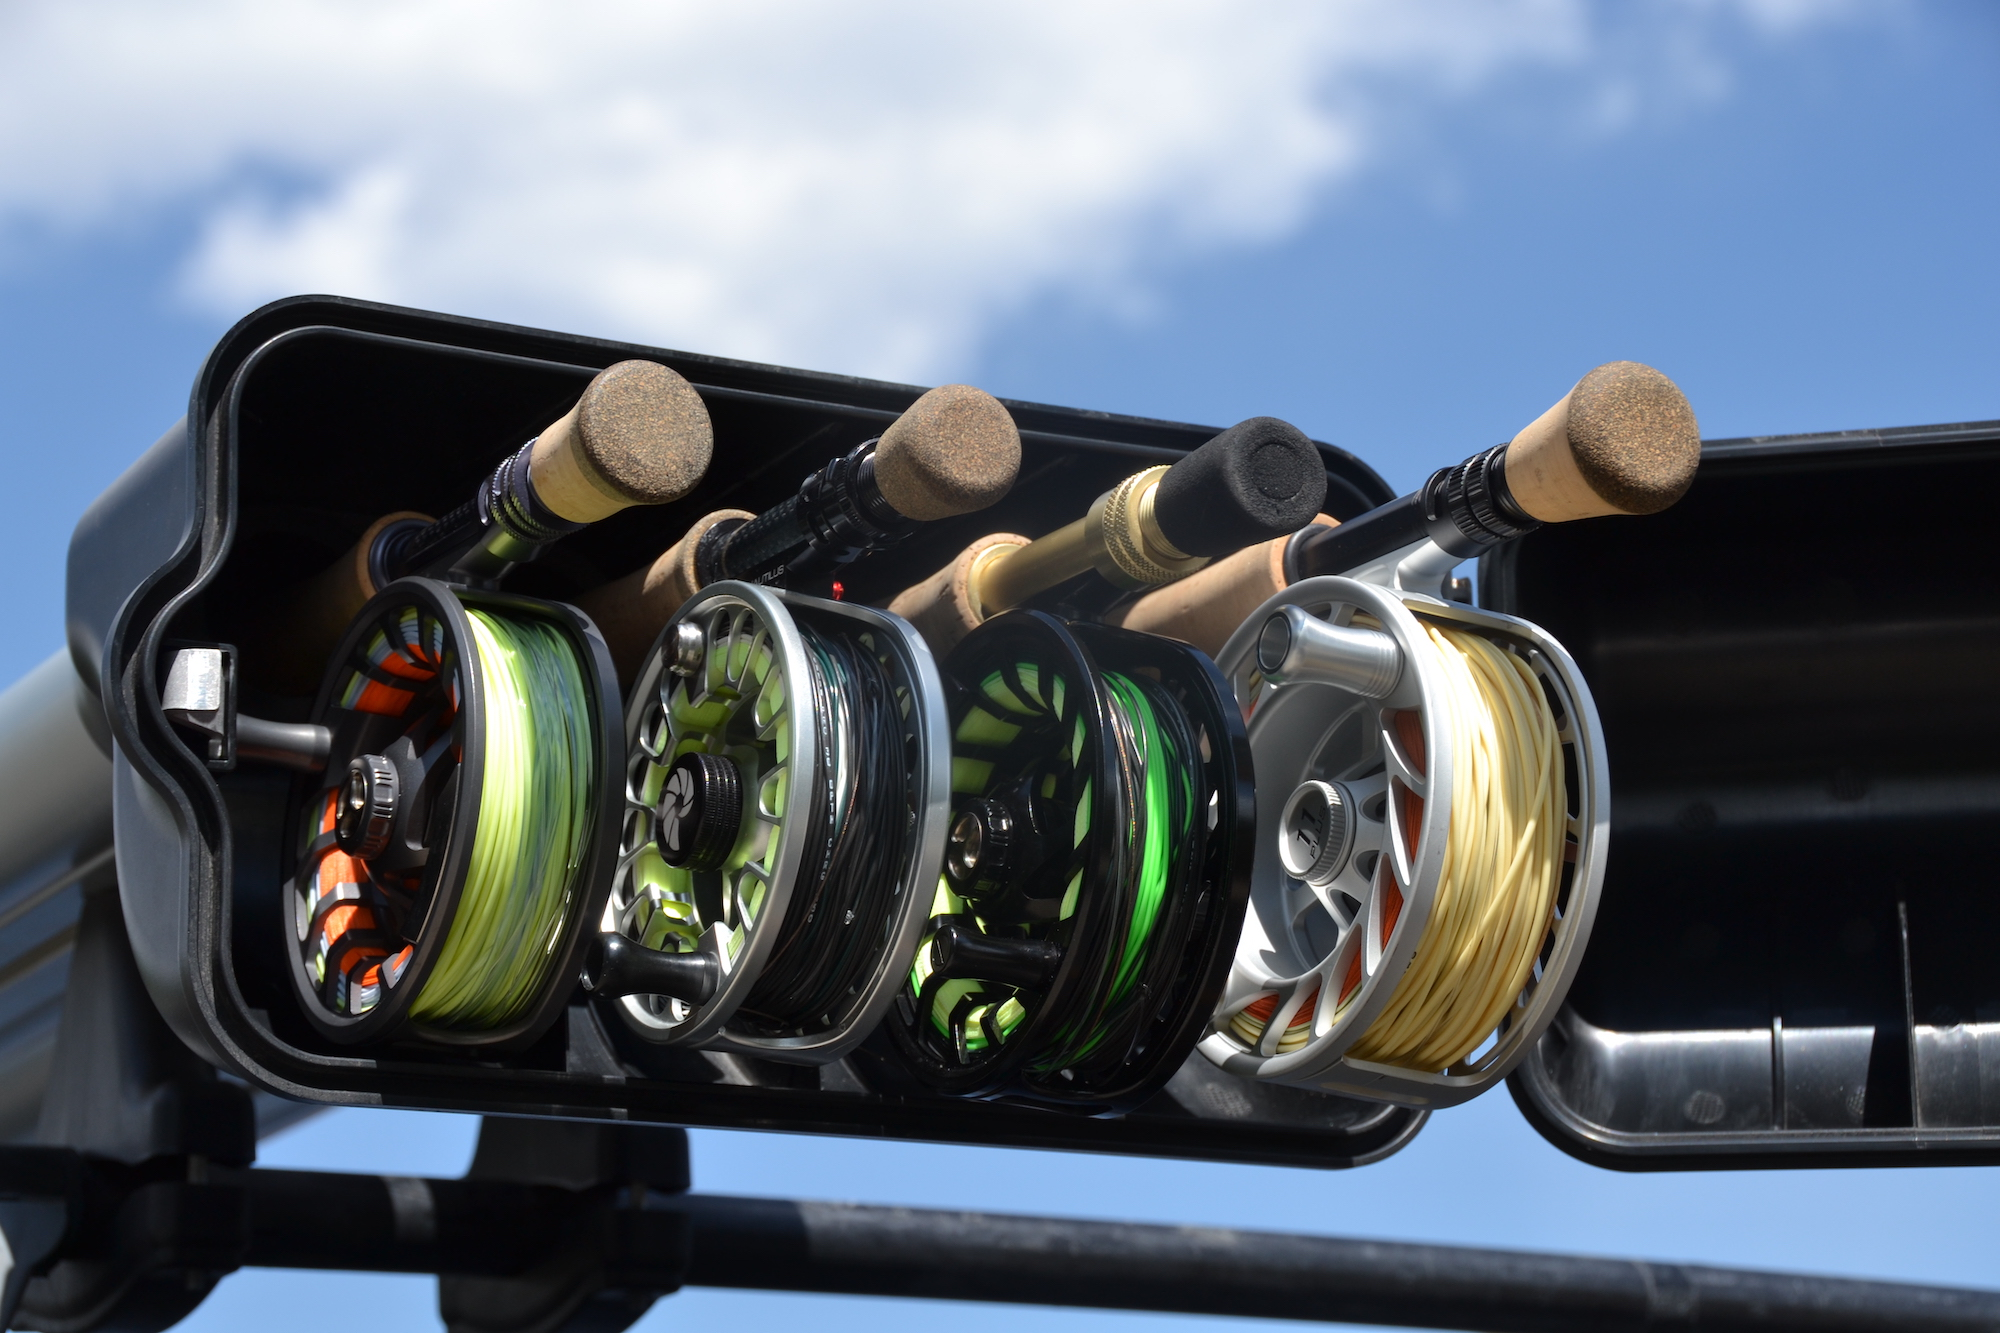 Taking Care of Your Fly Fishing Gear